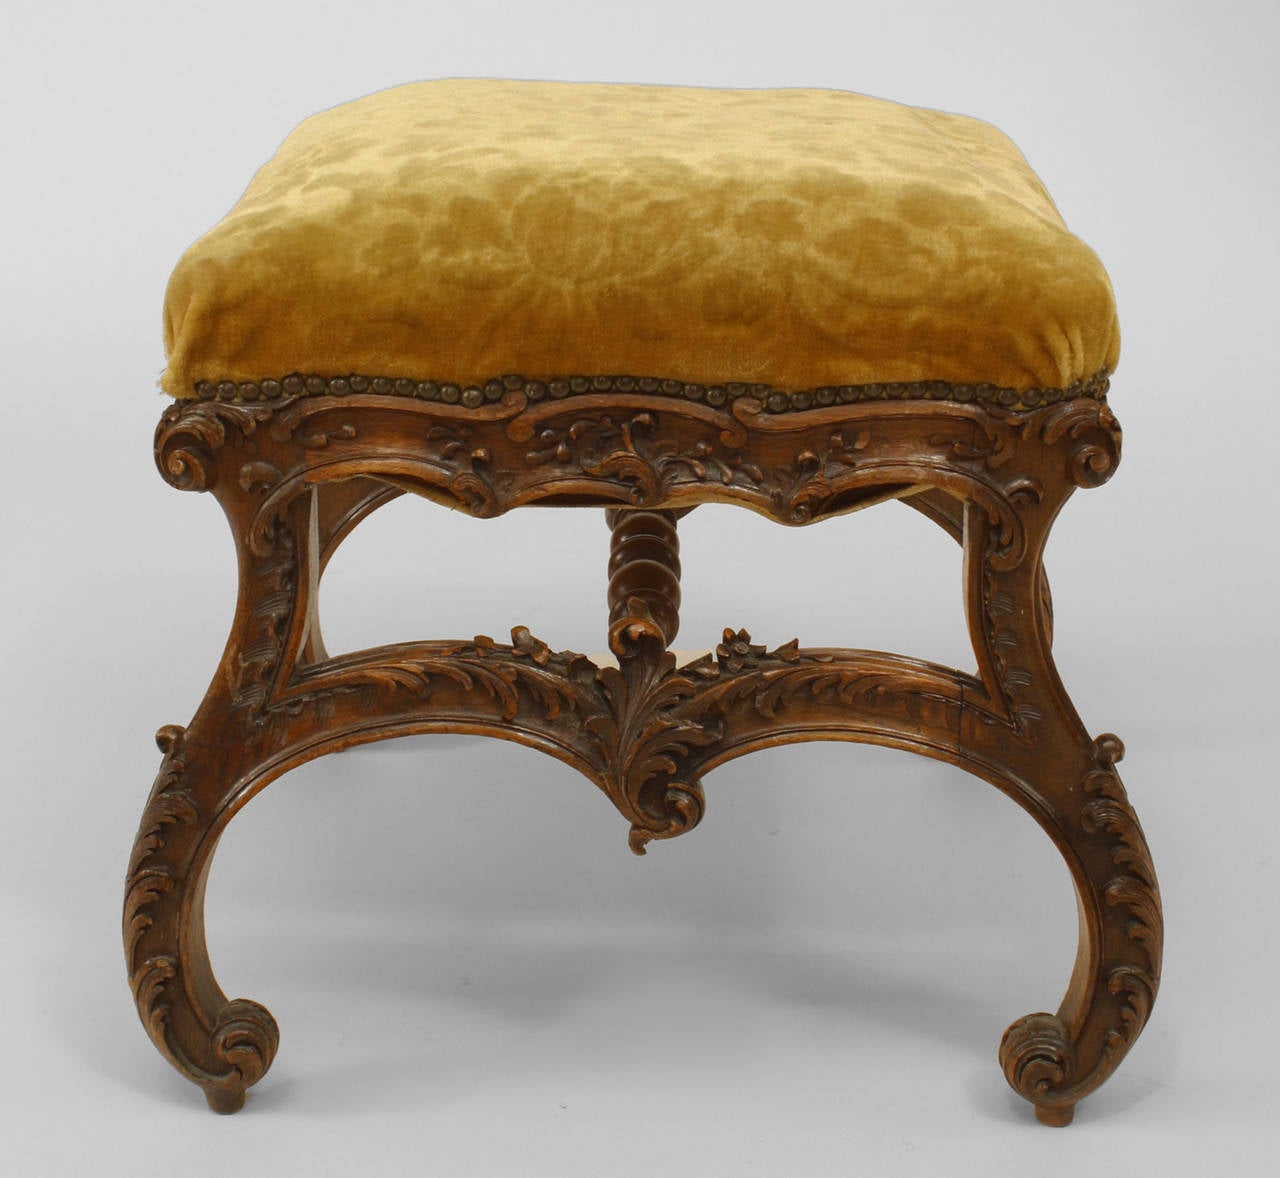 19th Century 19th c. Italian Baroque Style Square Upholstered Walnut Bench For Sale